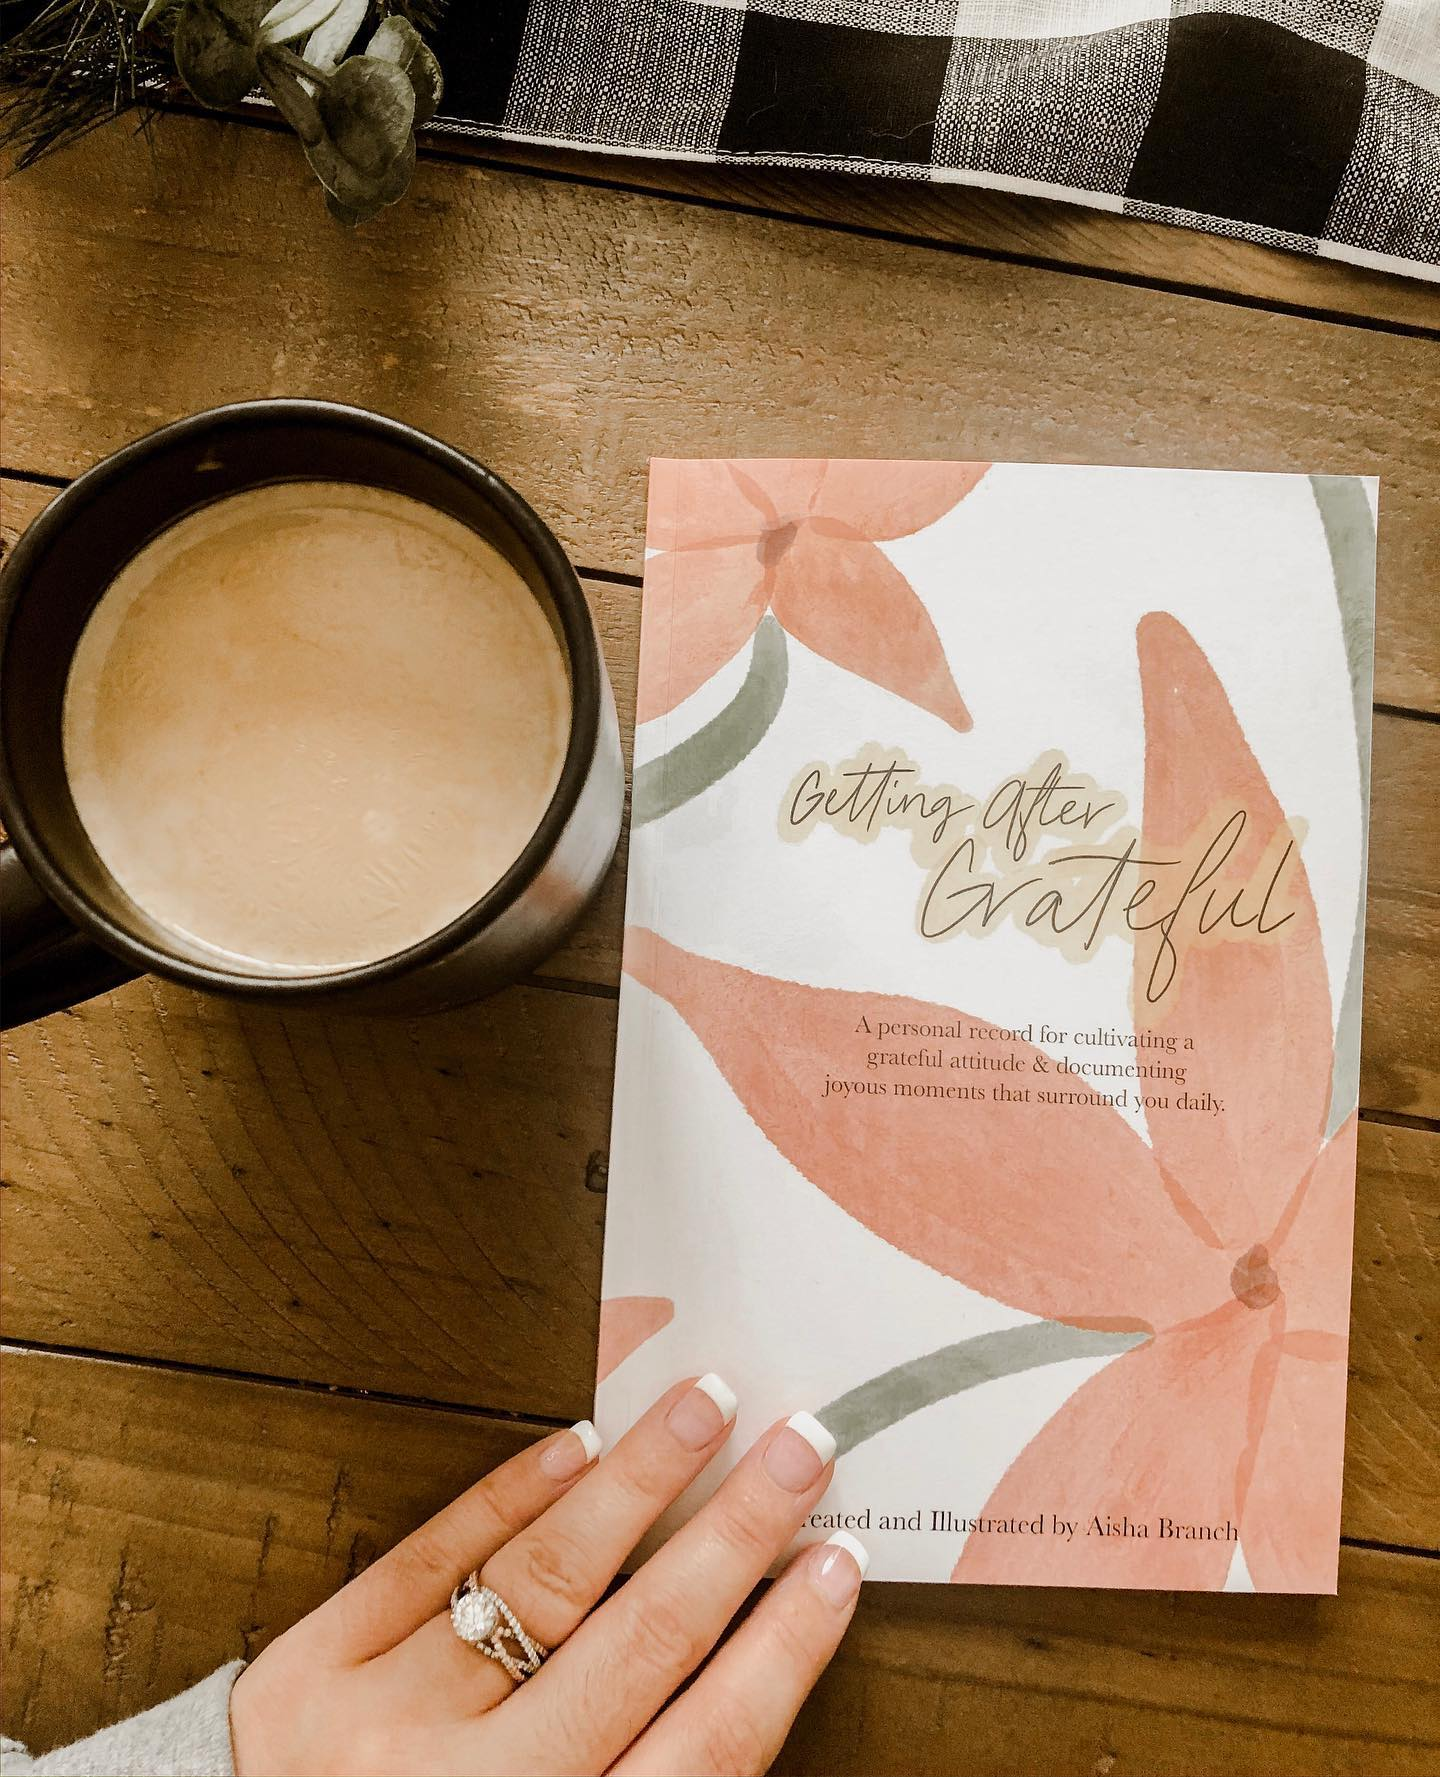 Getting After Grateful Daily Journal - Aisha Branch Studio Shop